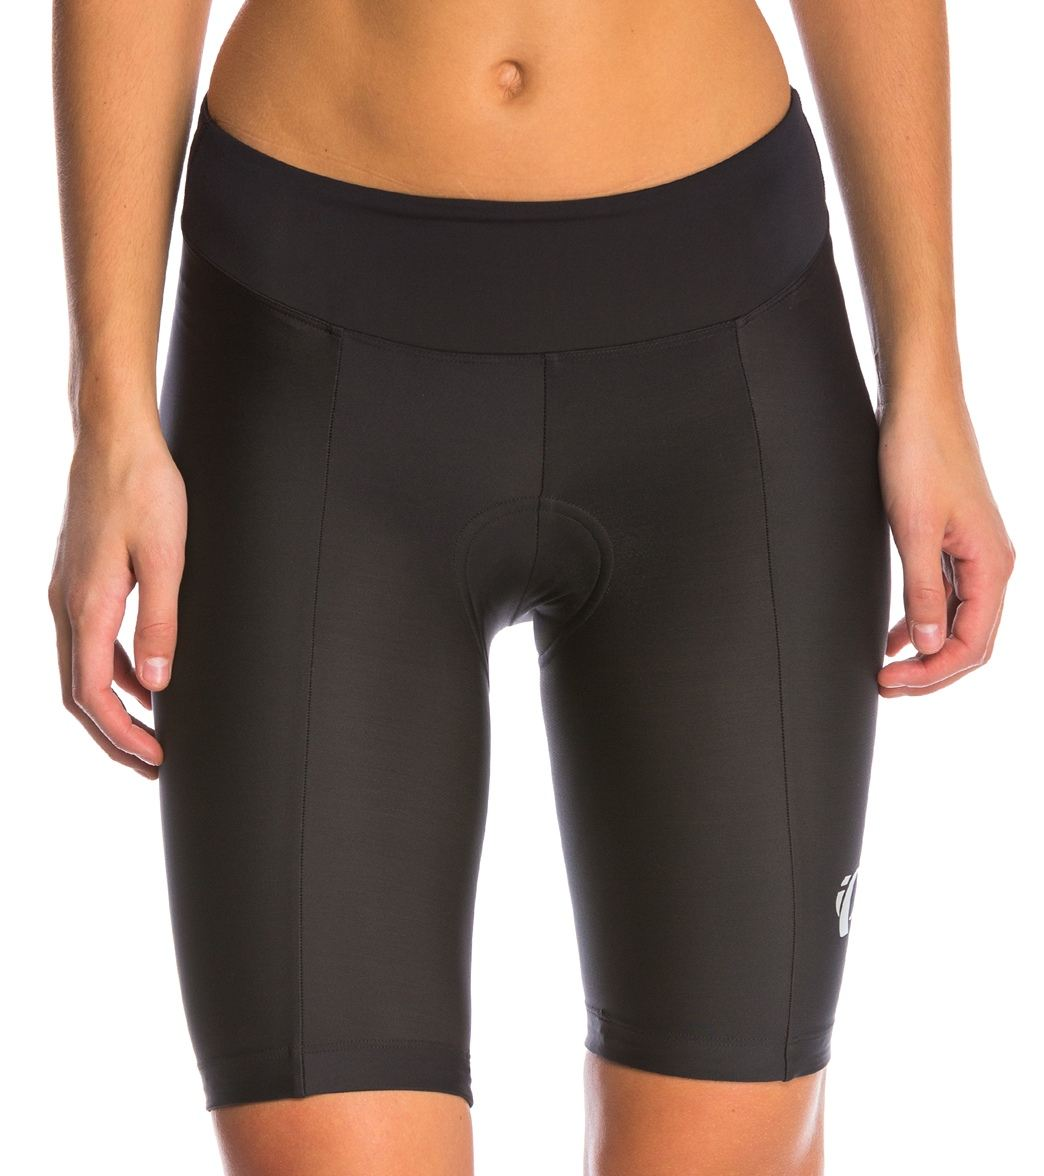 Pearl Izumi Women s Quest Cycling Short at SwimOutlet.com - Free ... 513b2b1dd